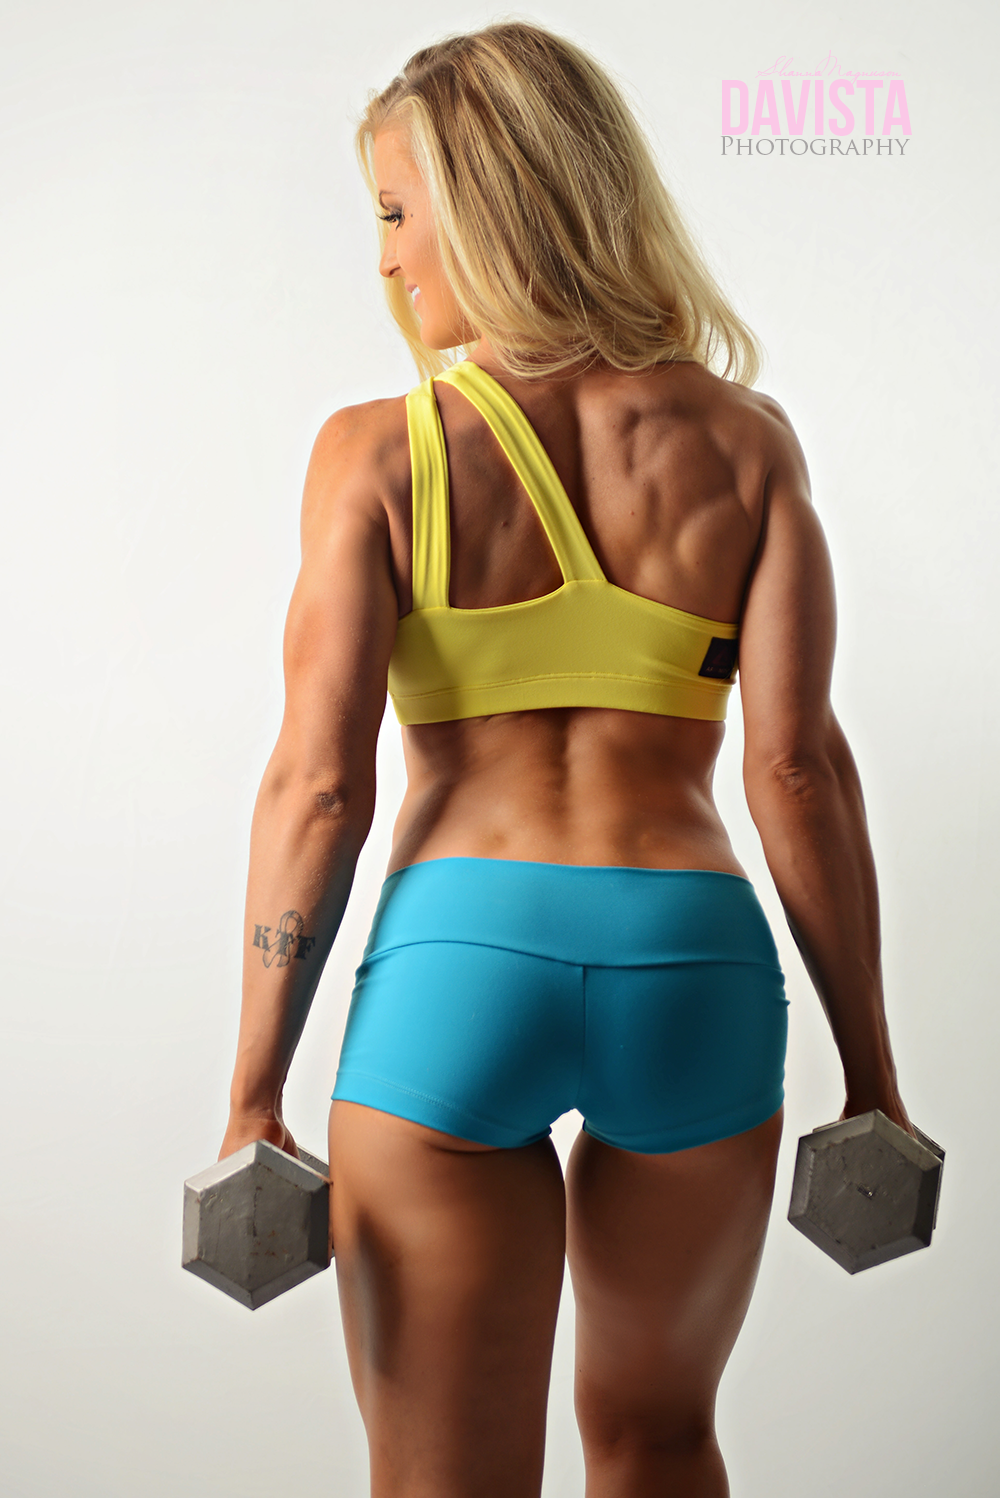 unique fitness photographer with weights